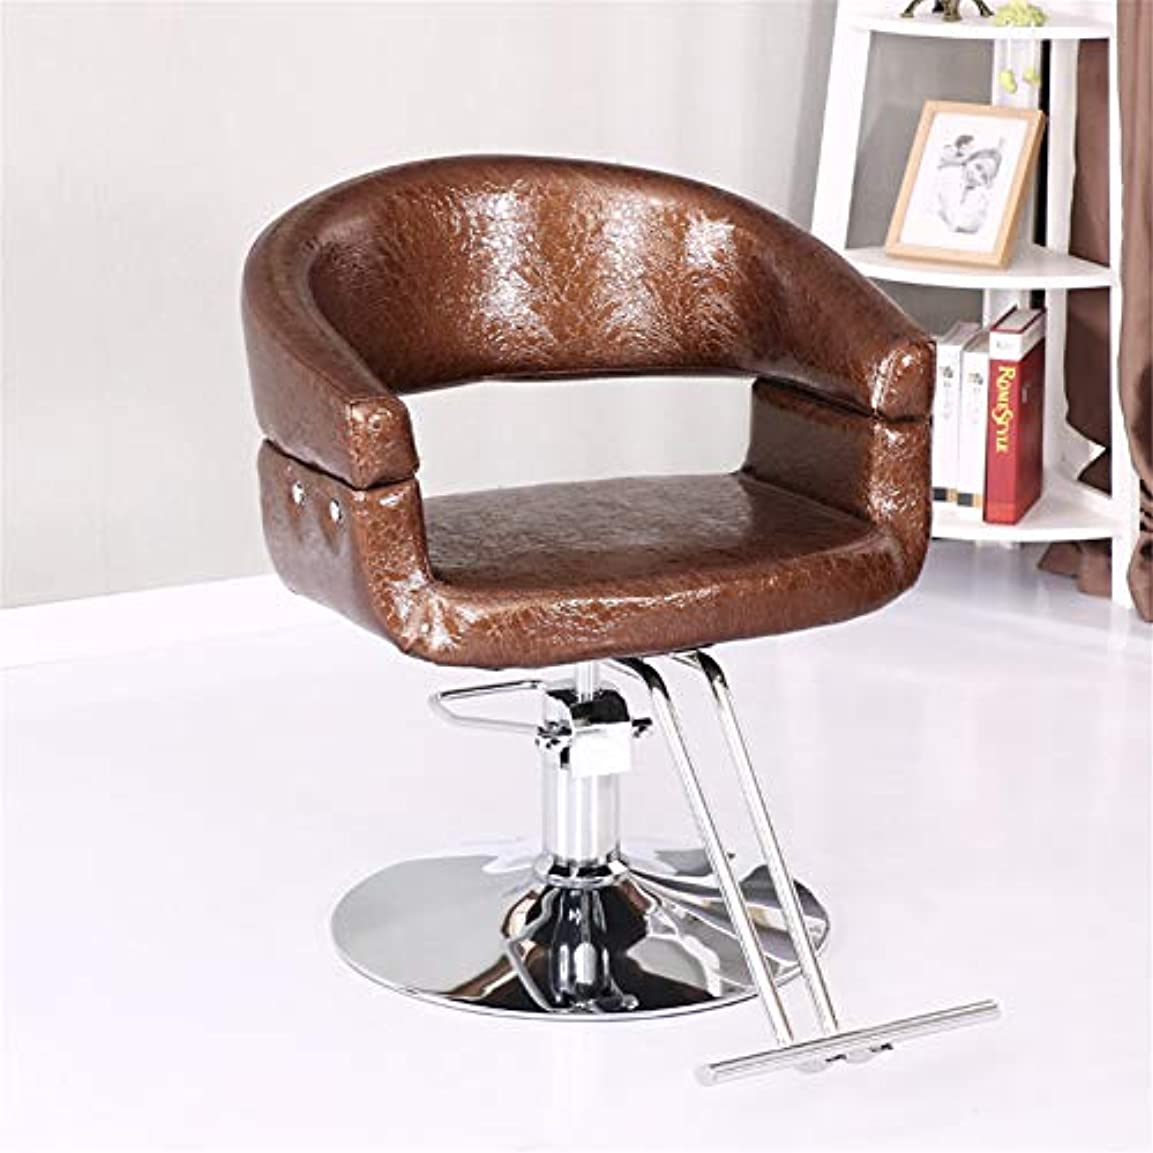 熟す読書チャネルSalon Chair Fashion Hydraulic Barber Chair Styling Beauty Salon Equipment Round Base Stable Comfort,Brown,B